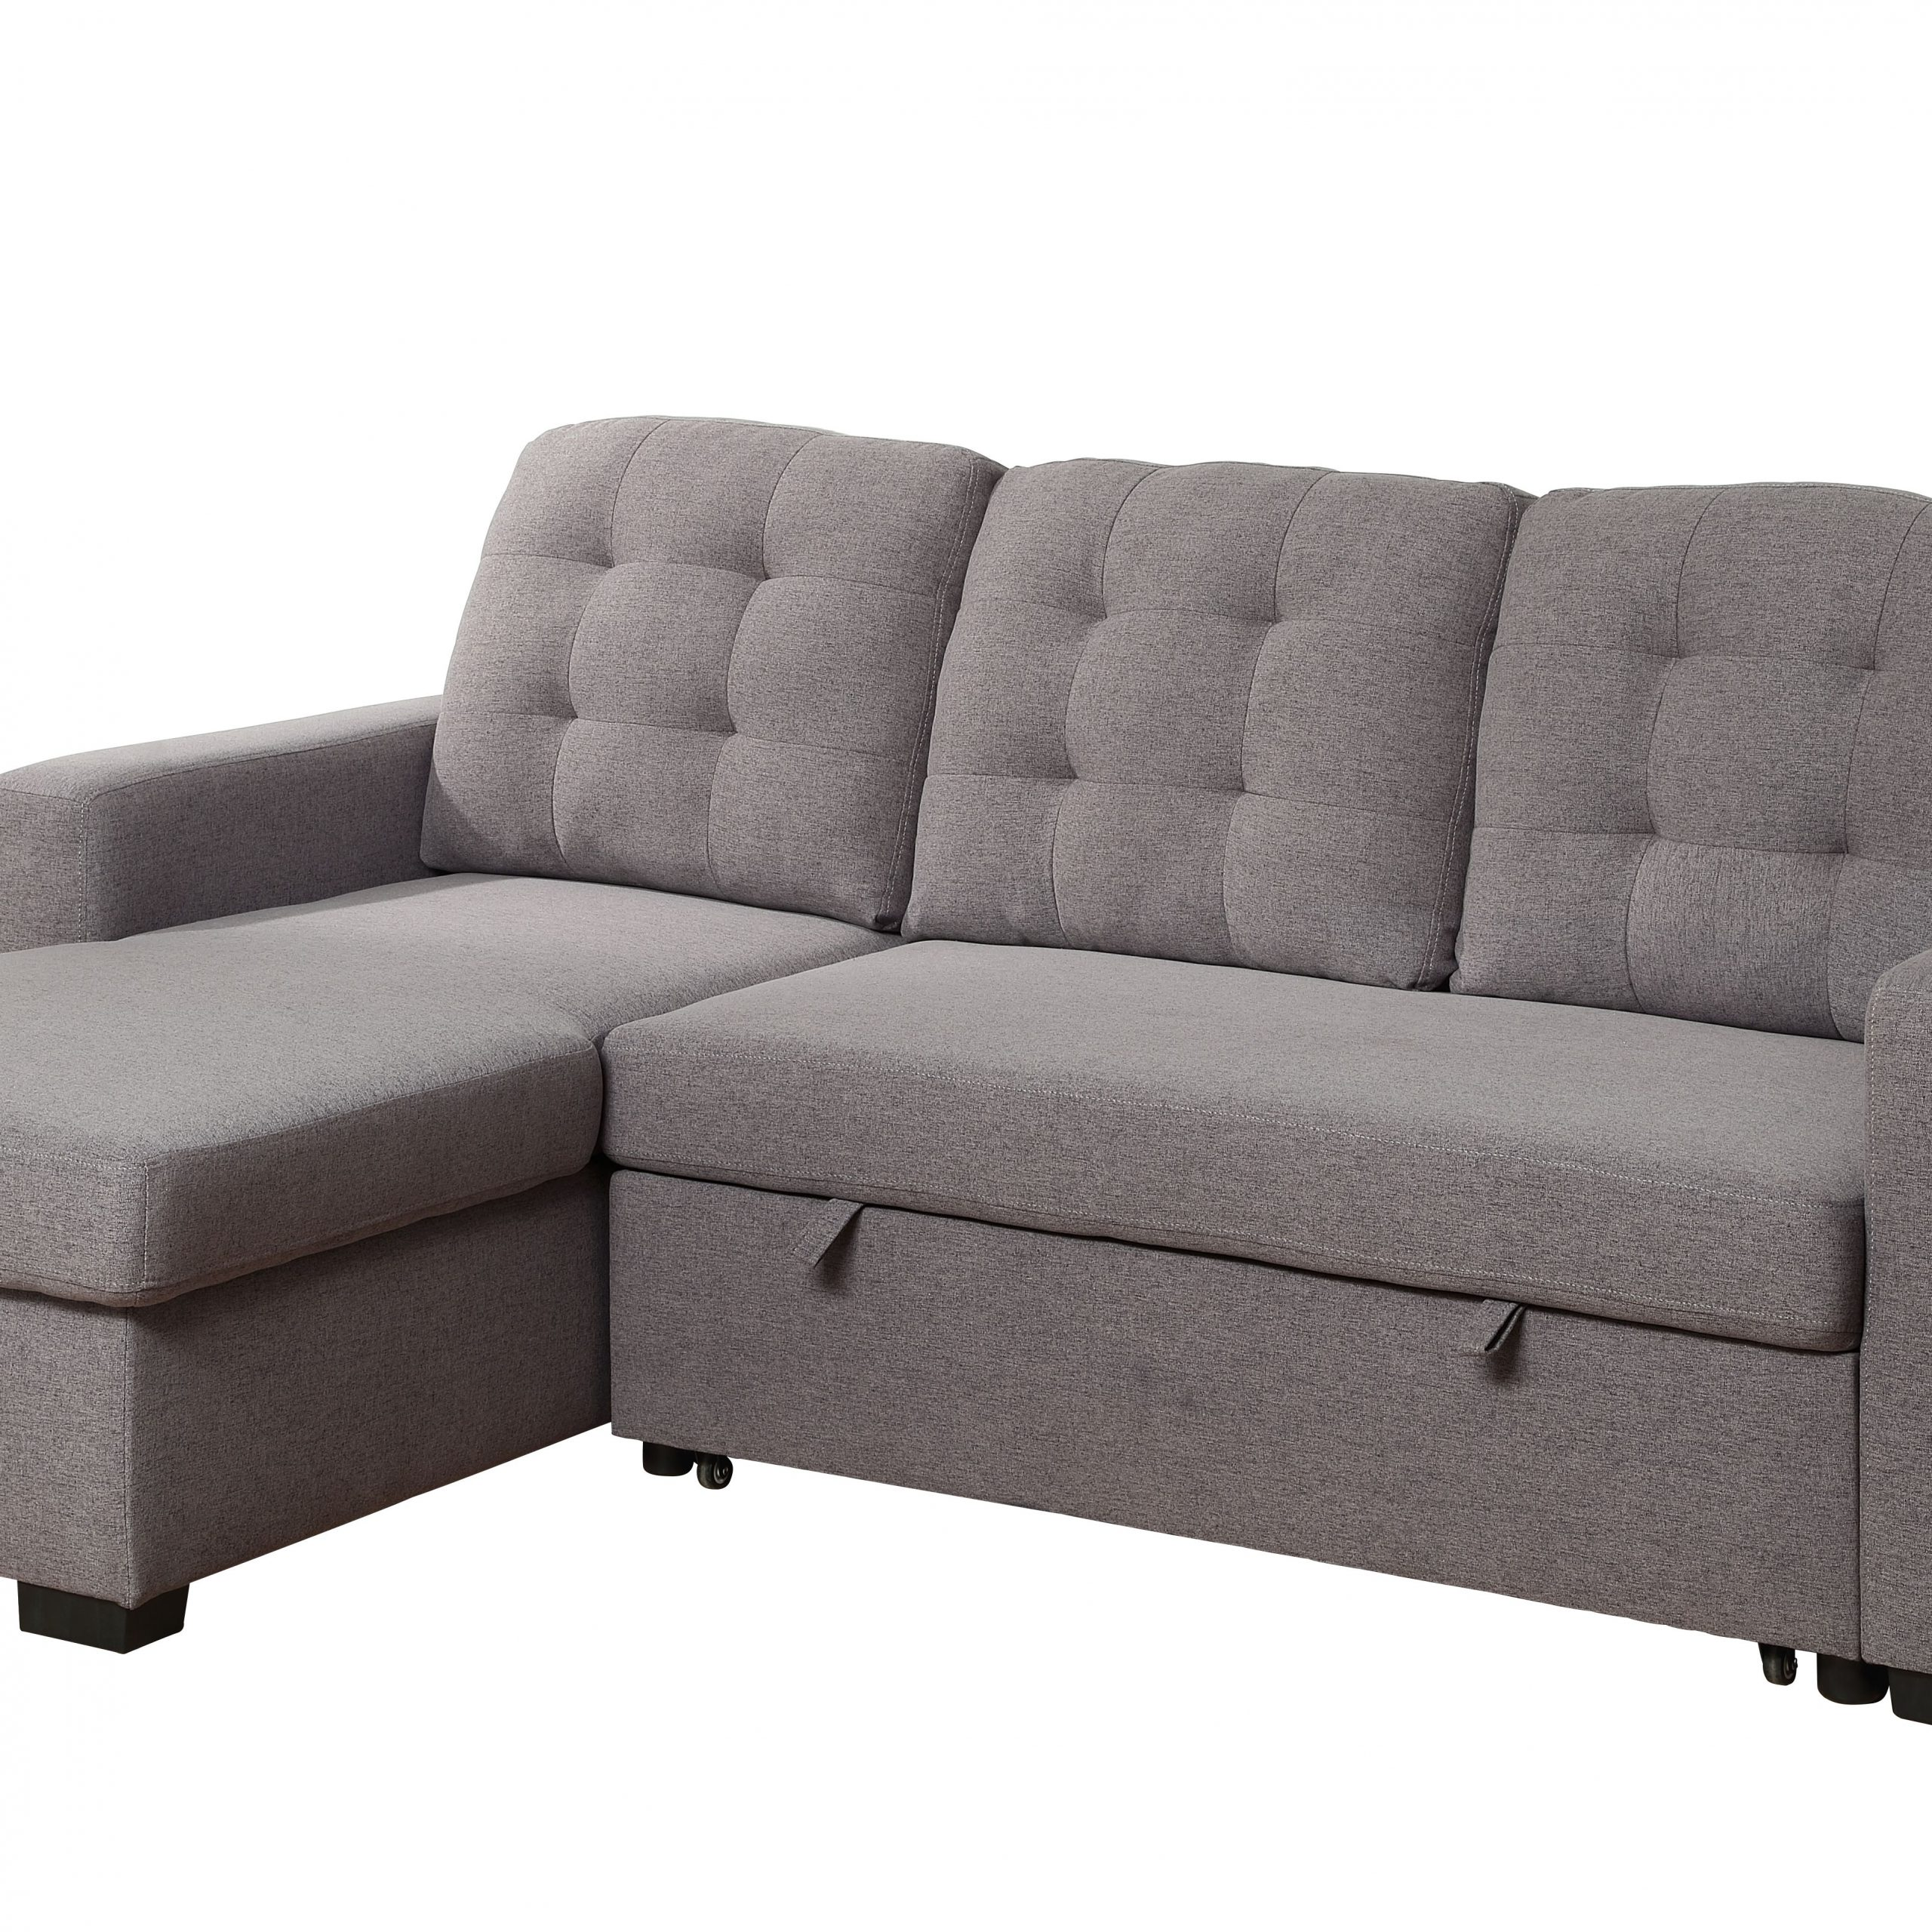 Palisades Reversible Small Space Sectional Sofas With Storage Pertaining To Widely Used Chambord Reversible Storage Sleeper Sectional Sofa In Gray (View 13 of 20)